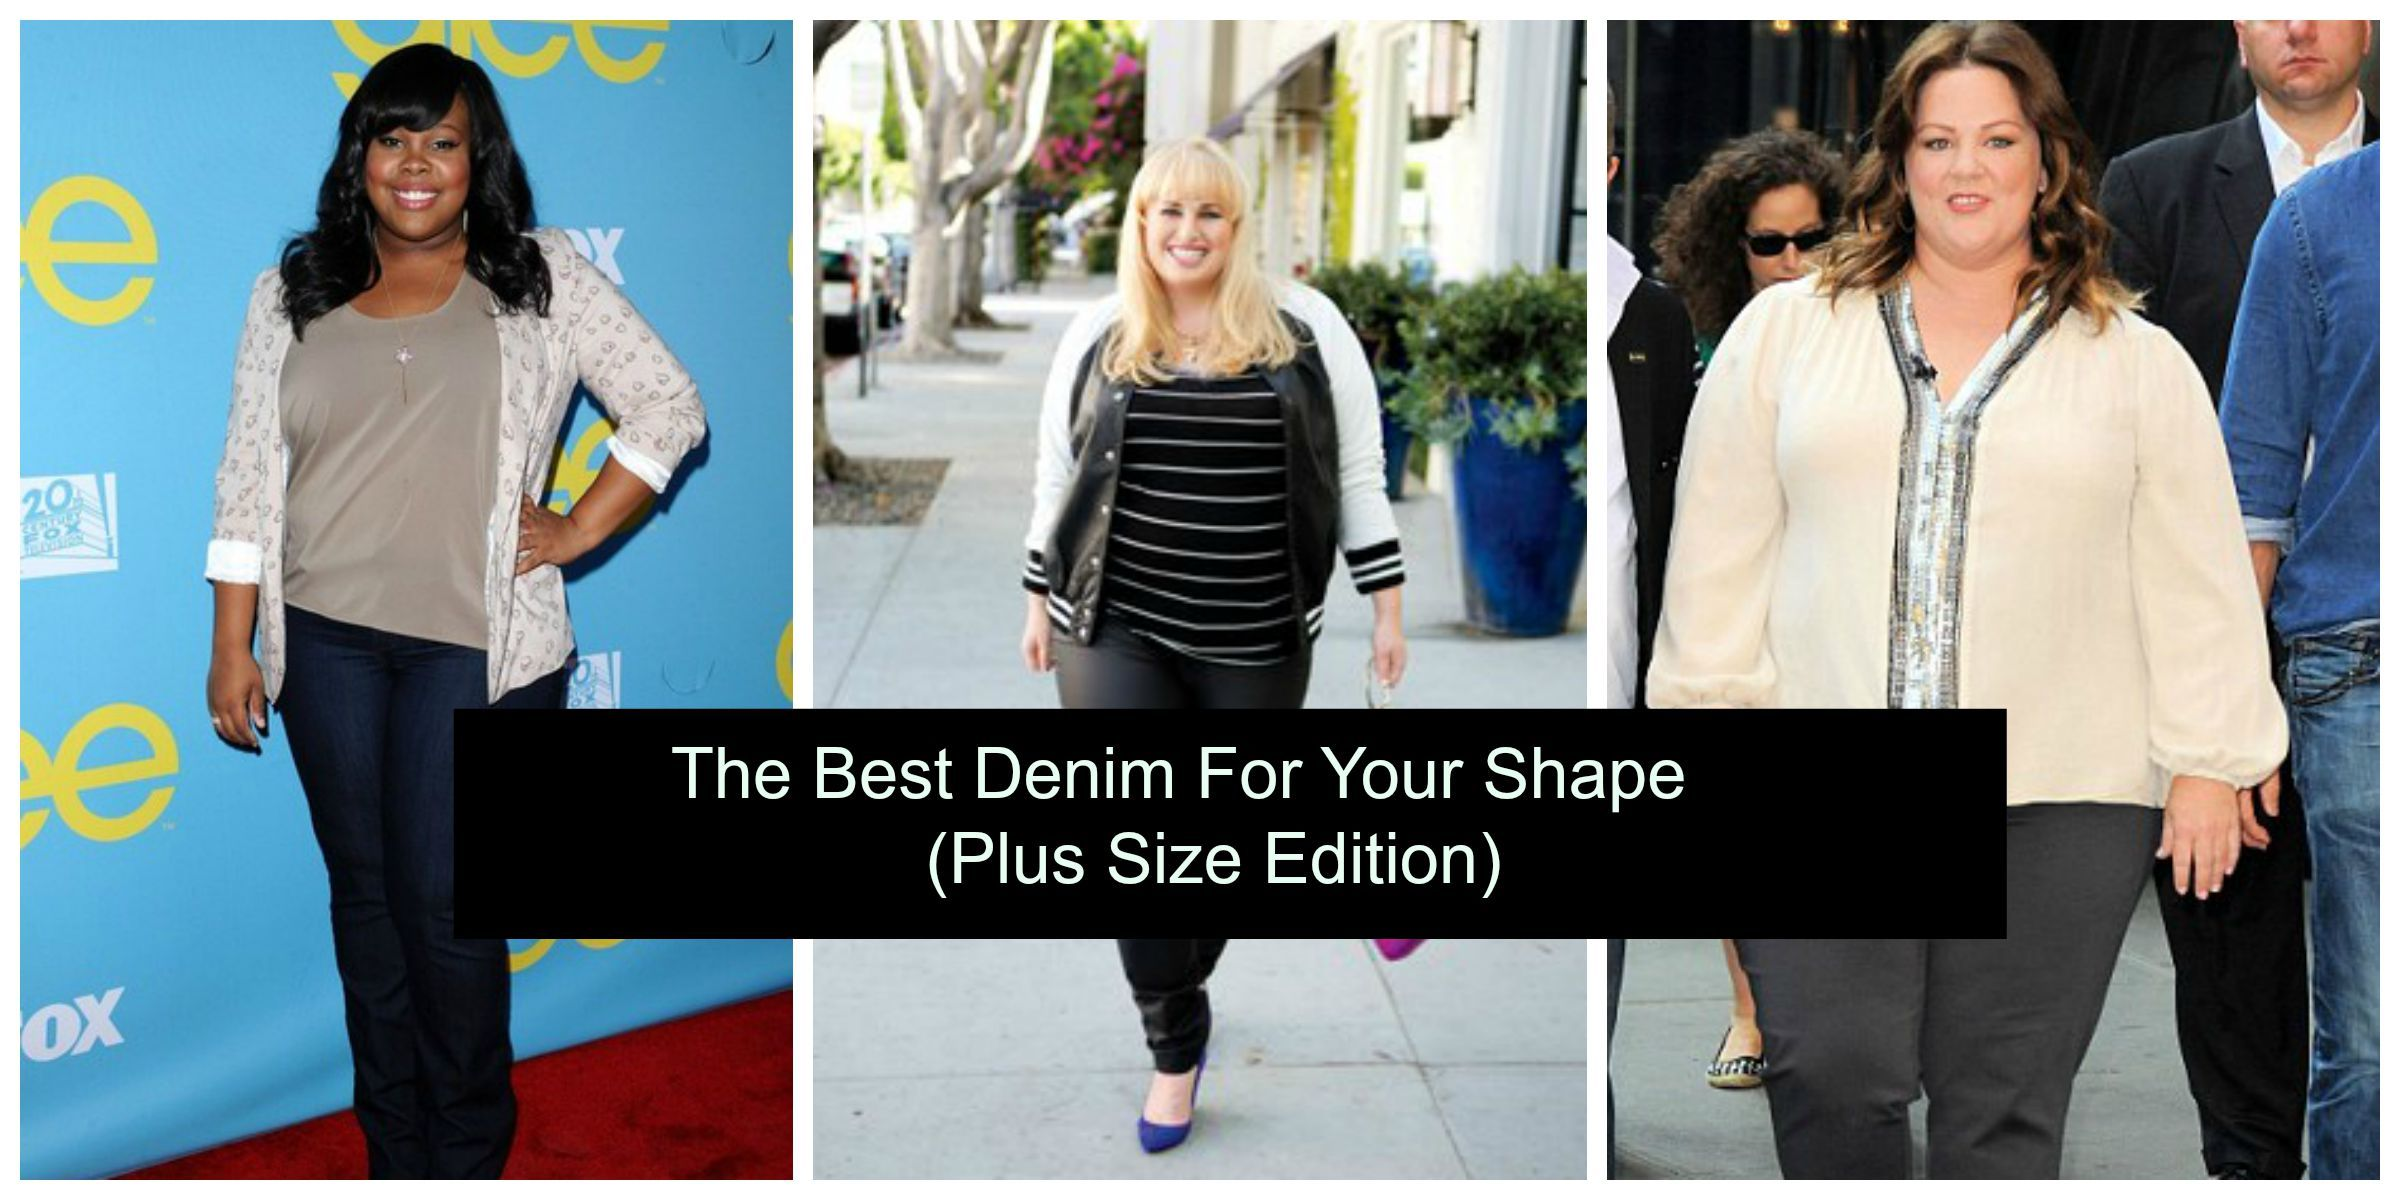 The Best Jeans for Your Shape picture